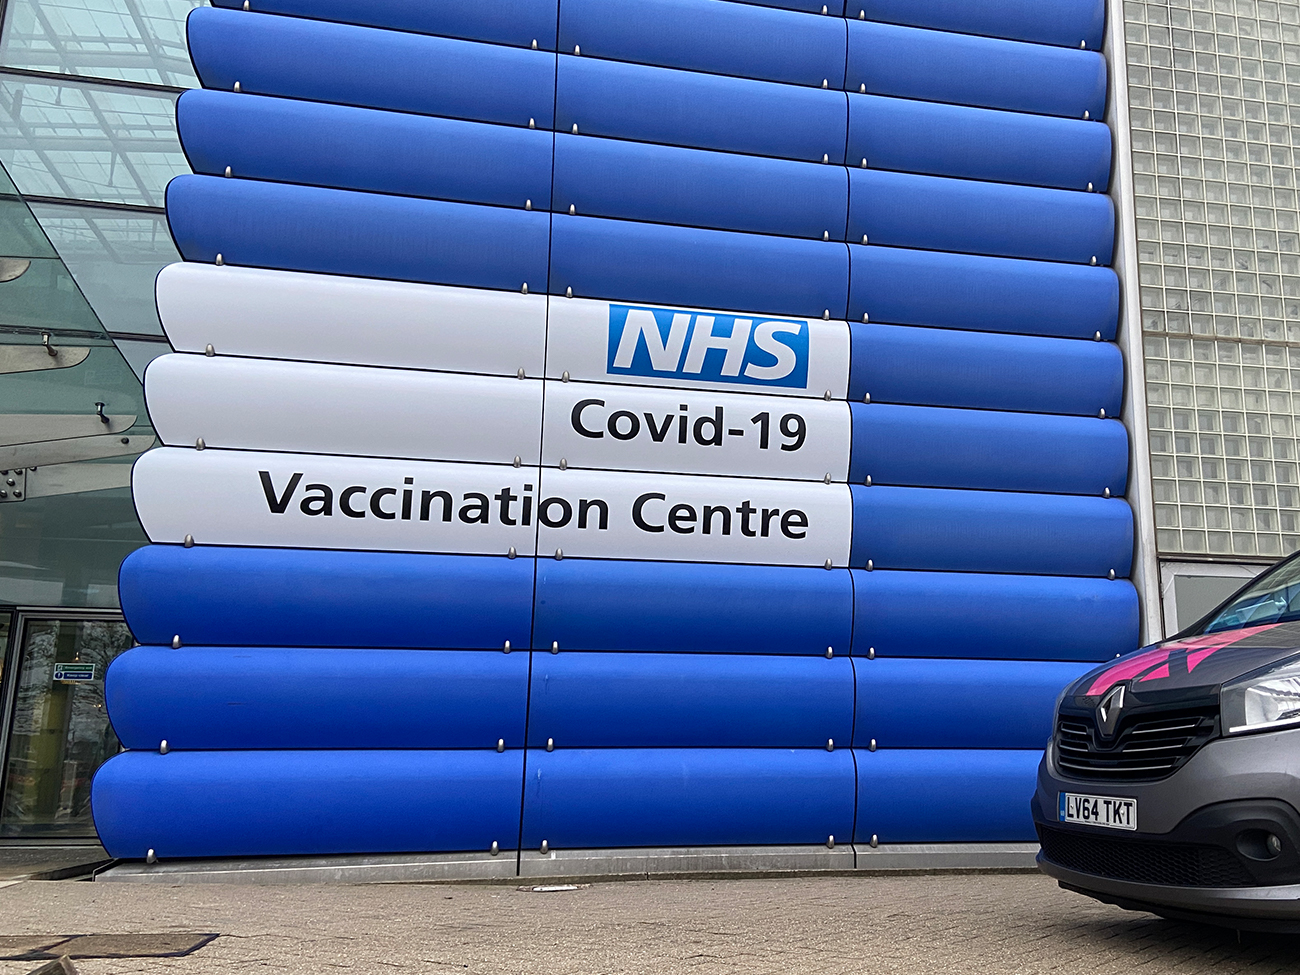 NHS Vaccination Centre Signage